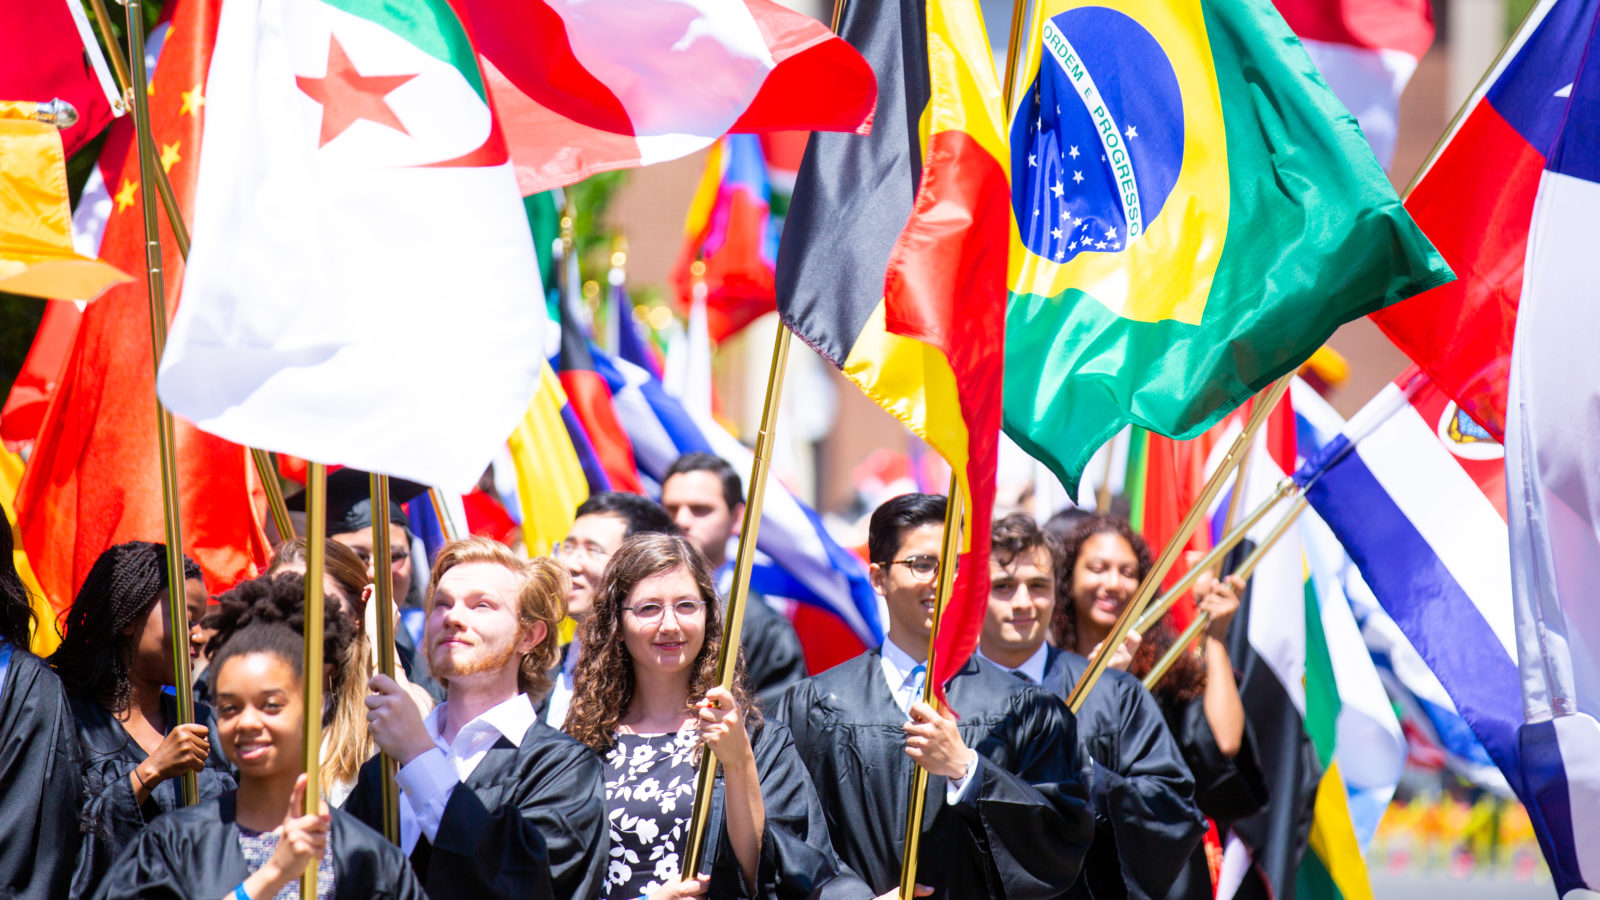 Georgetown students in caps and gowns holding large flags from different countries